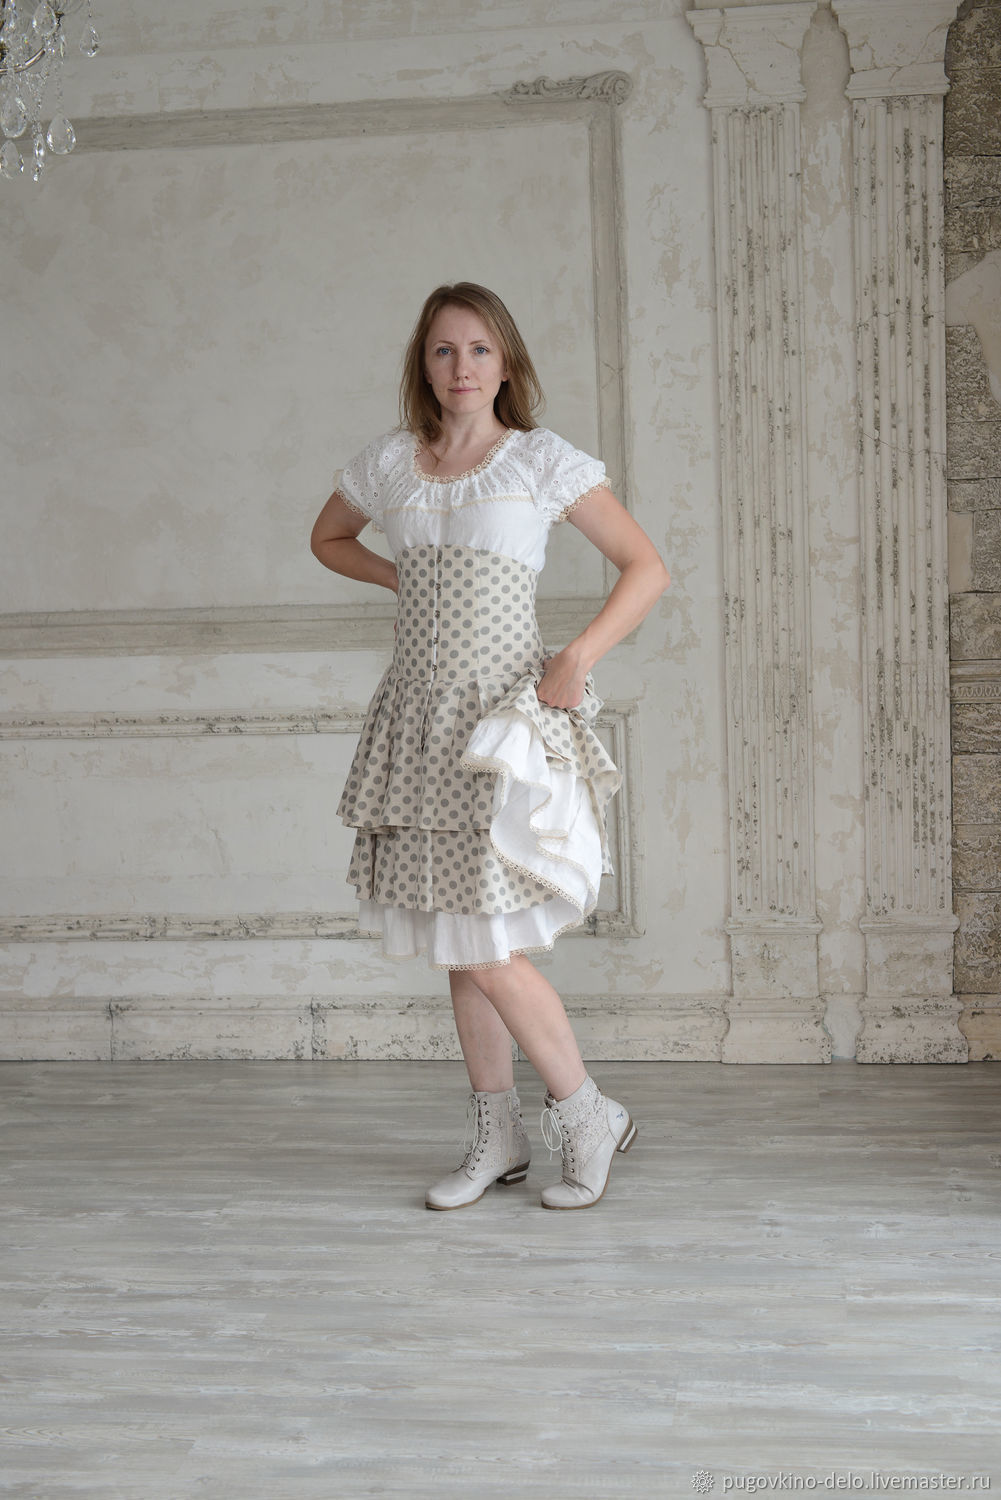 Skirt with a clasp Busk cotton polka dots, Skirts, Kemerovo,  Фото №1